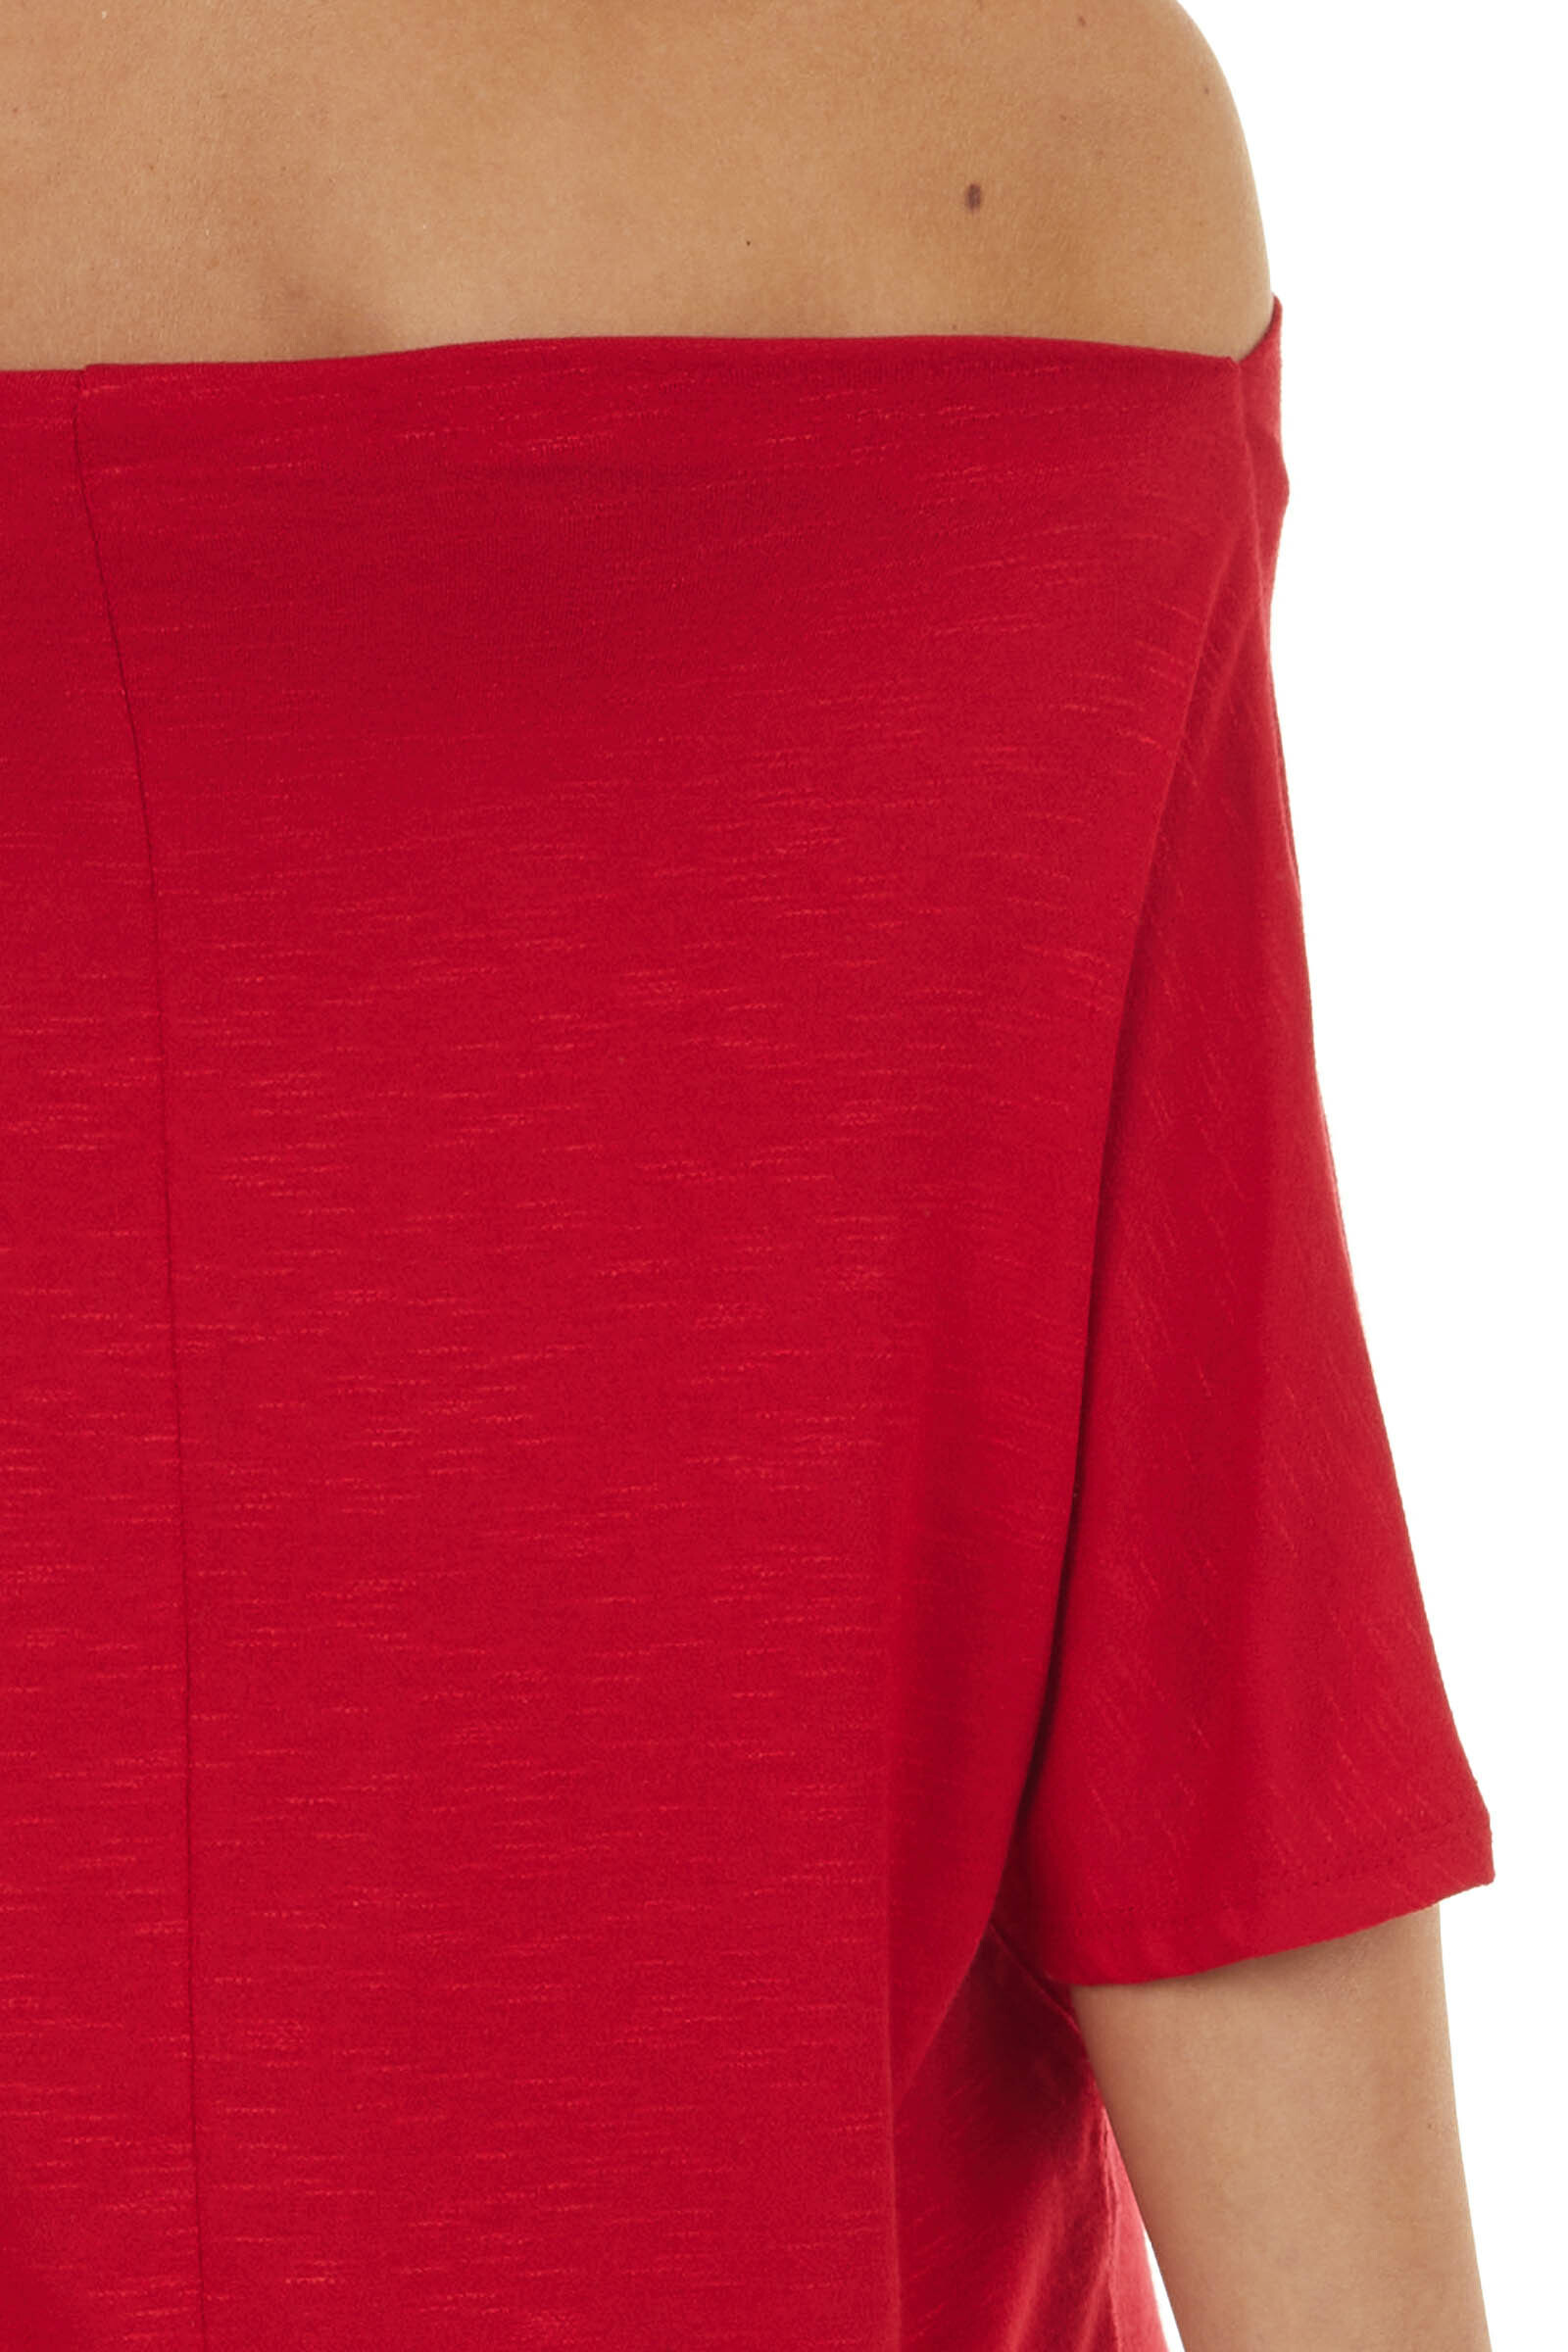 Heathered Cranberry Loose Fit Off the Shoulder Knit Tee